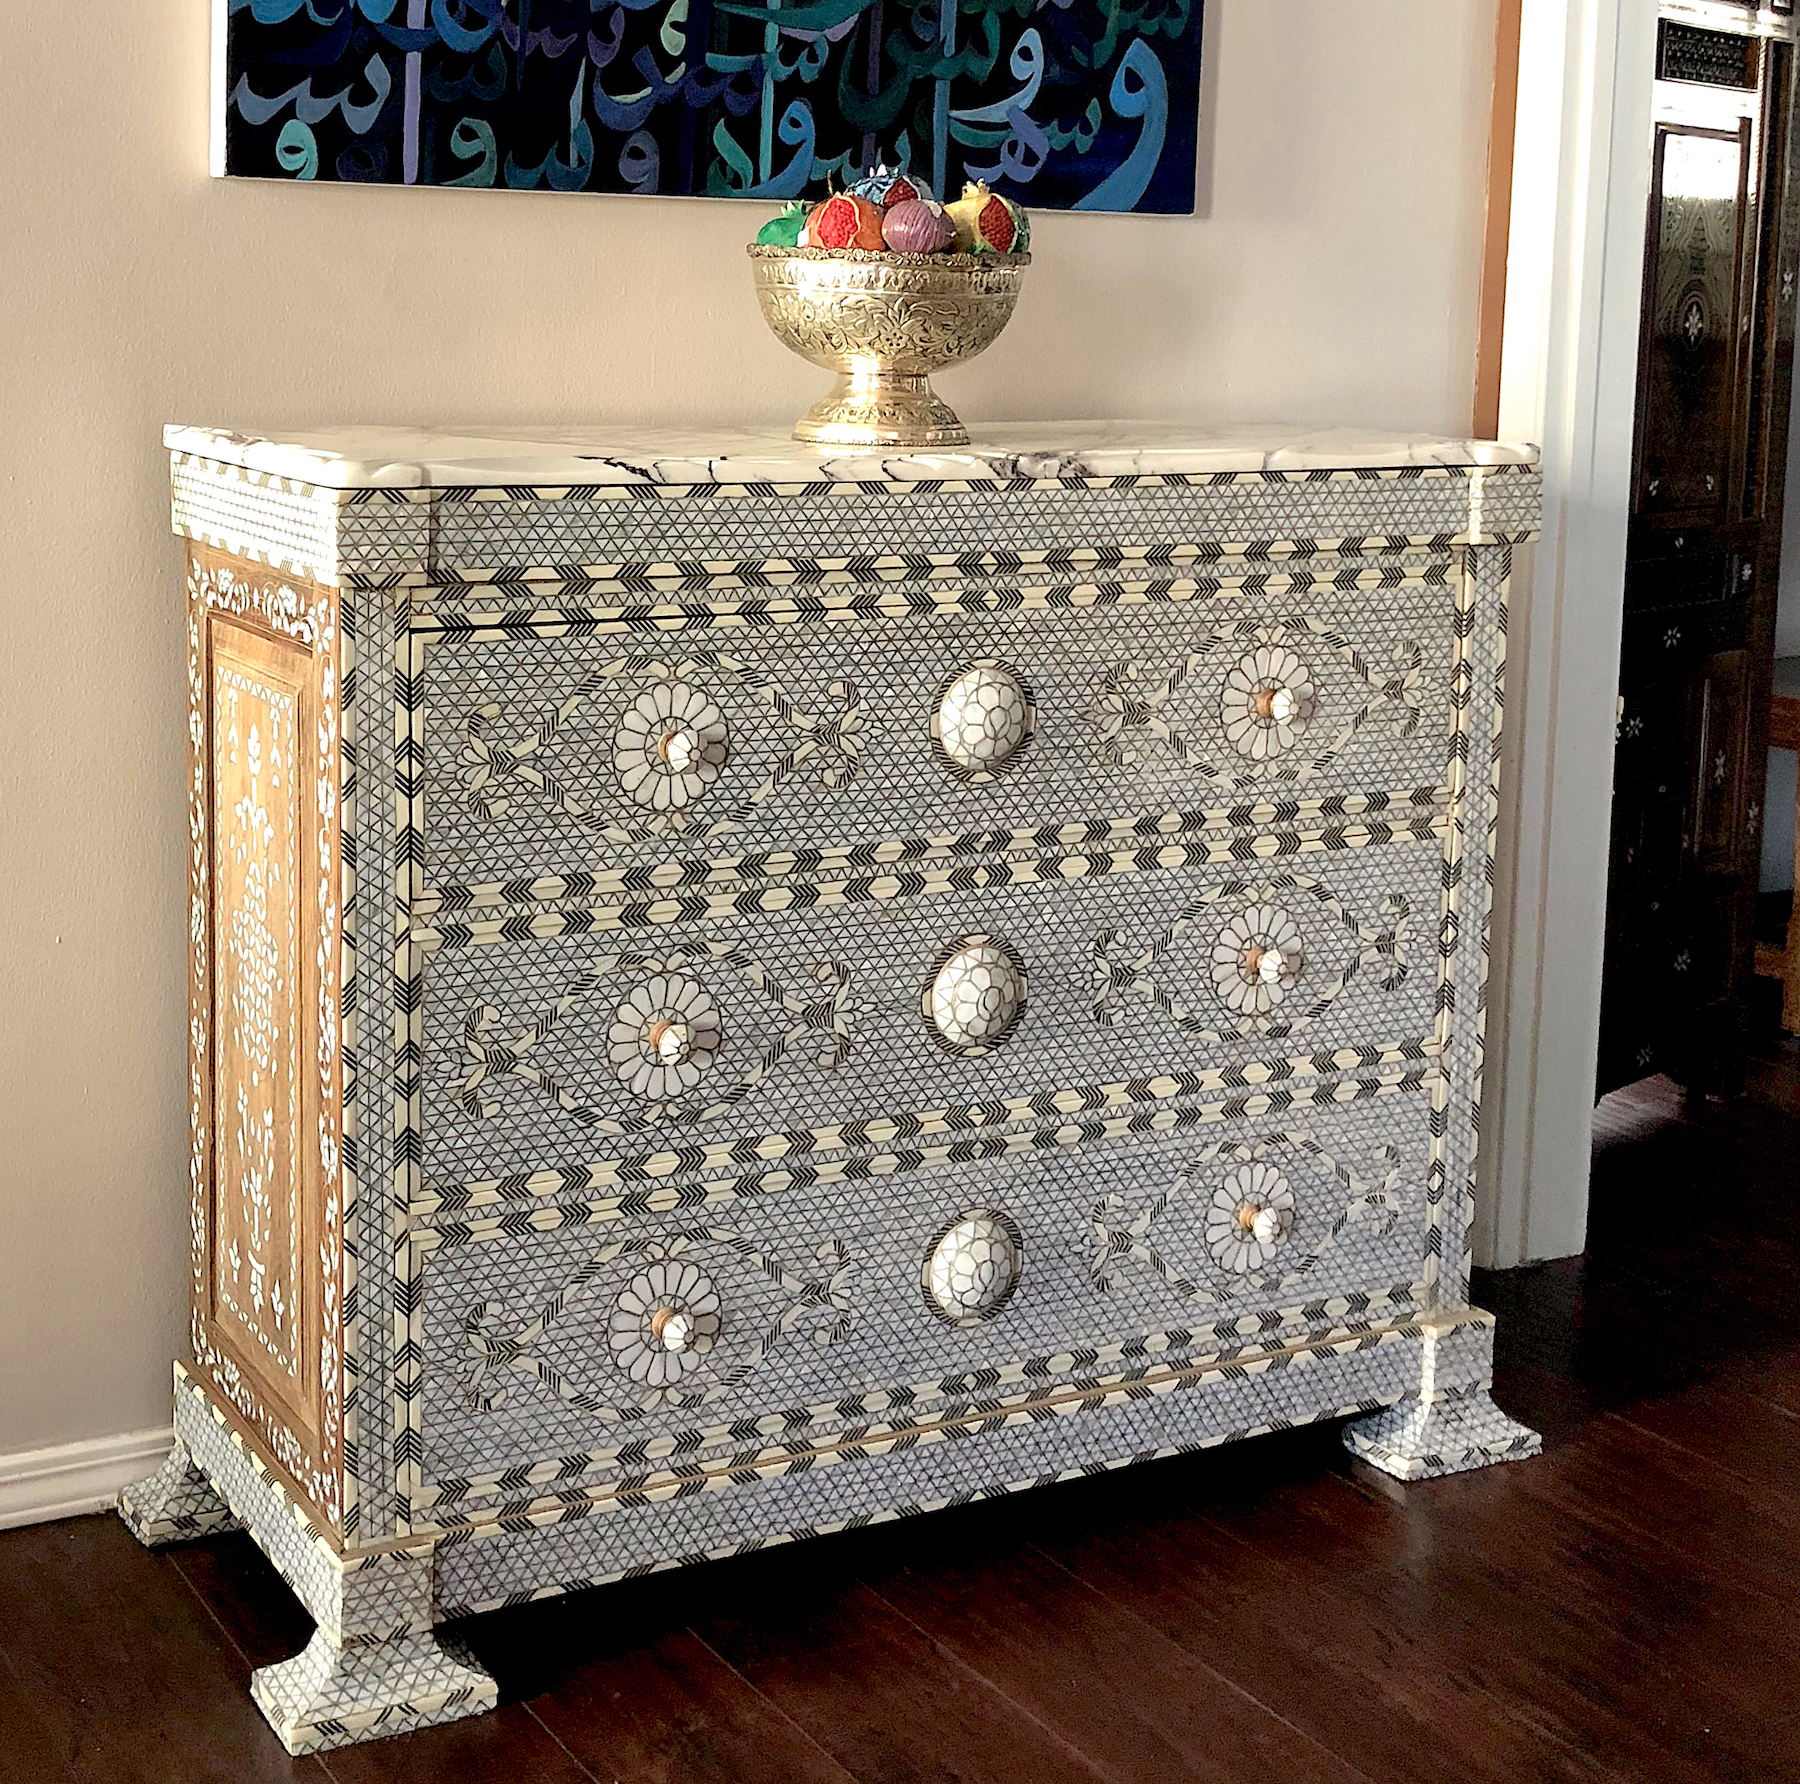 Syrian mother of pearl inlaycommode